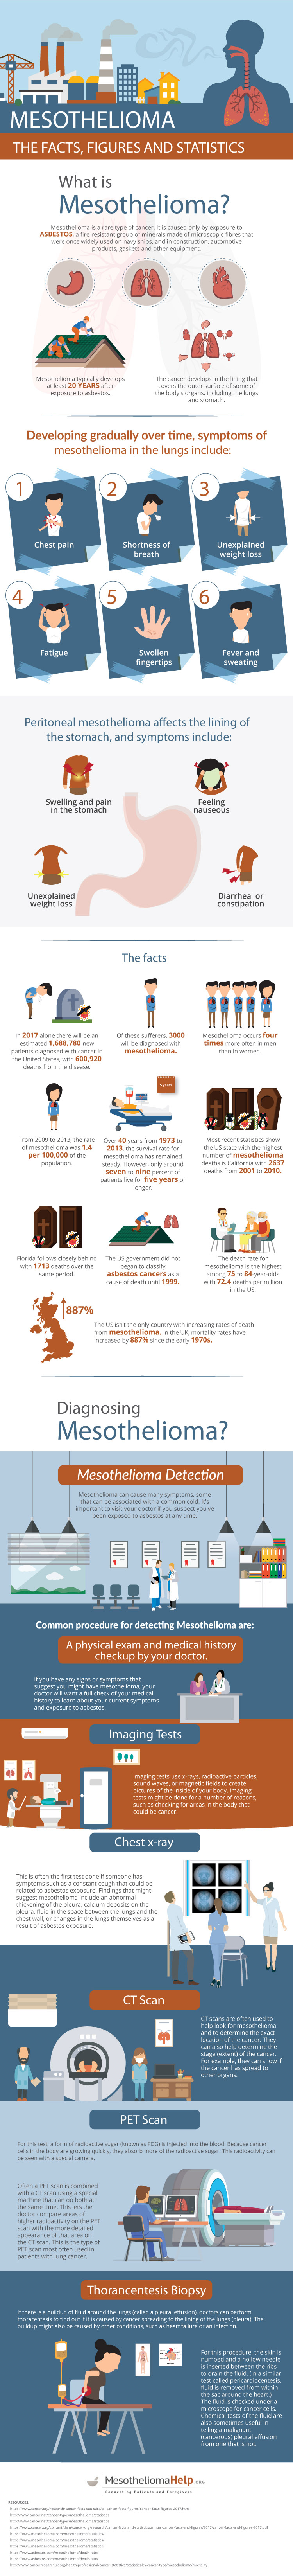 Deadly Mesothelioma: An Environmental and Health Disaster - Infographic